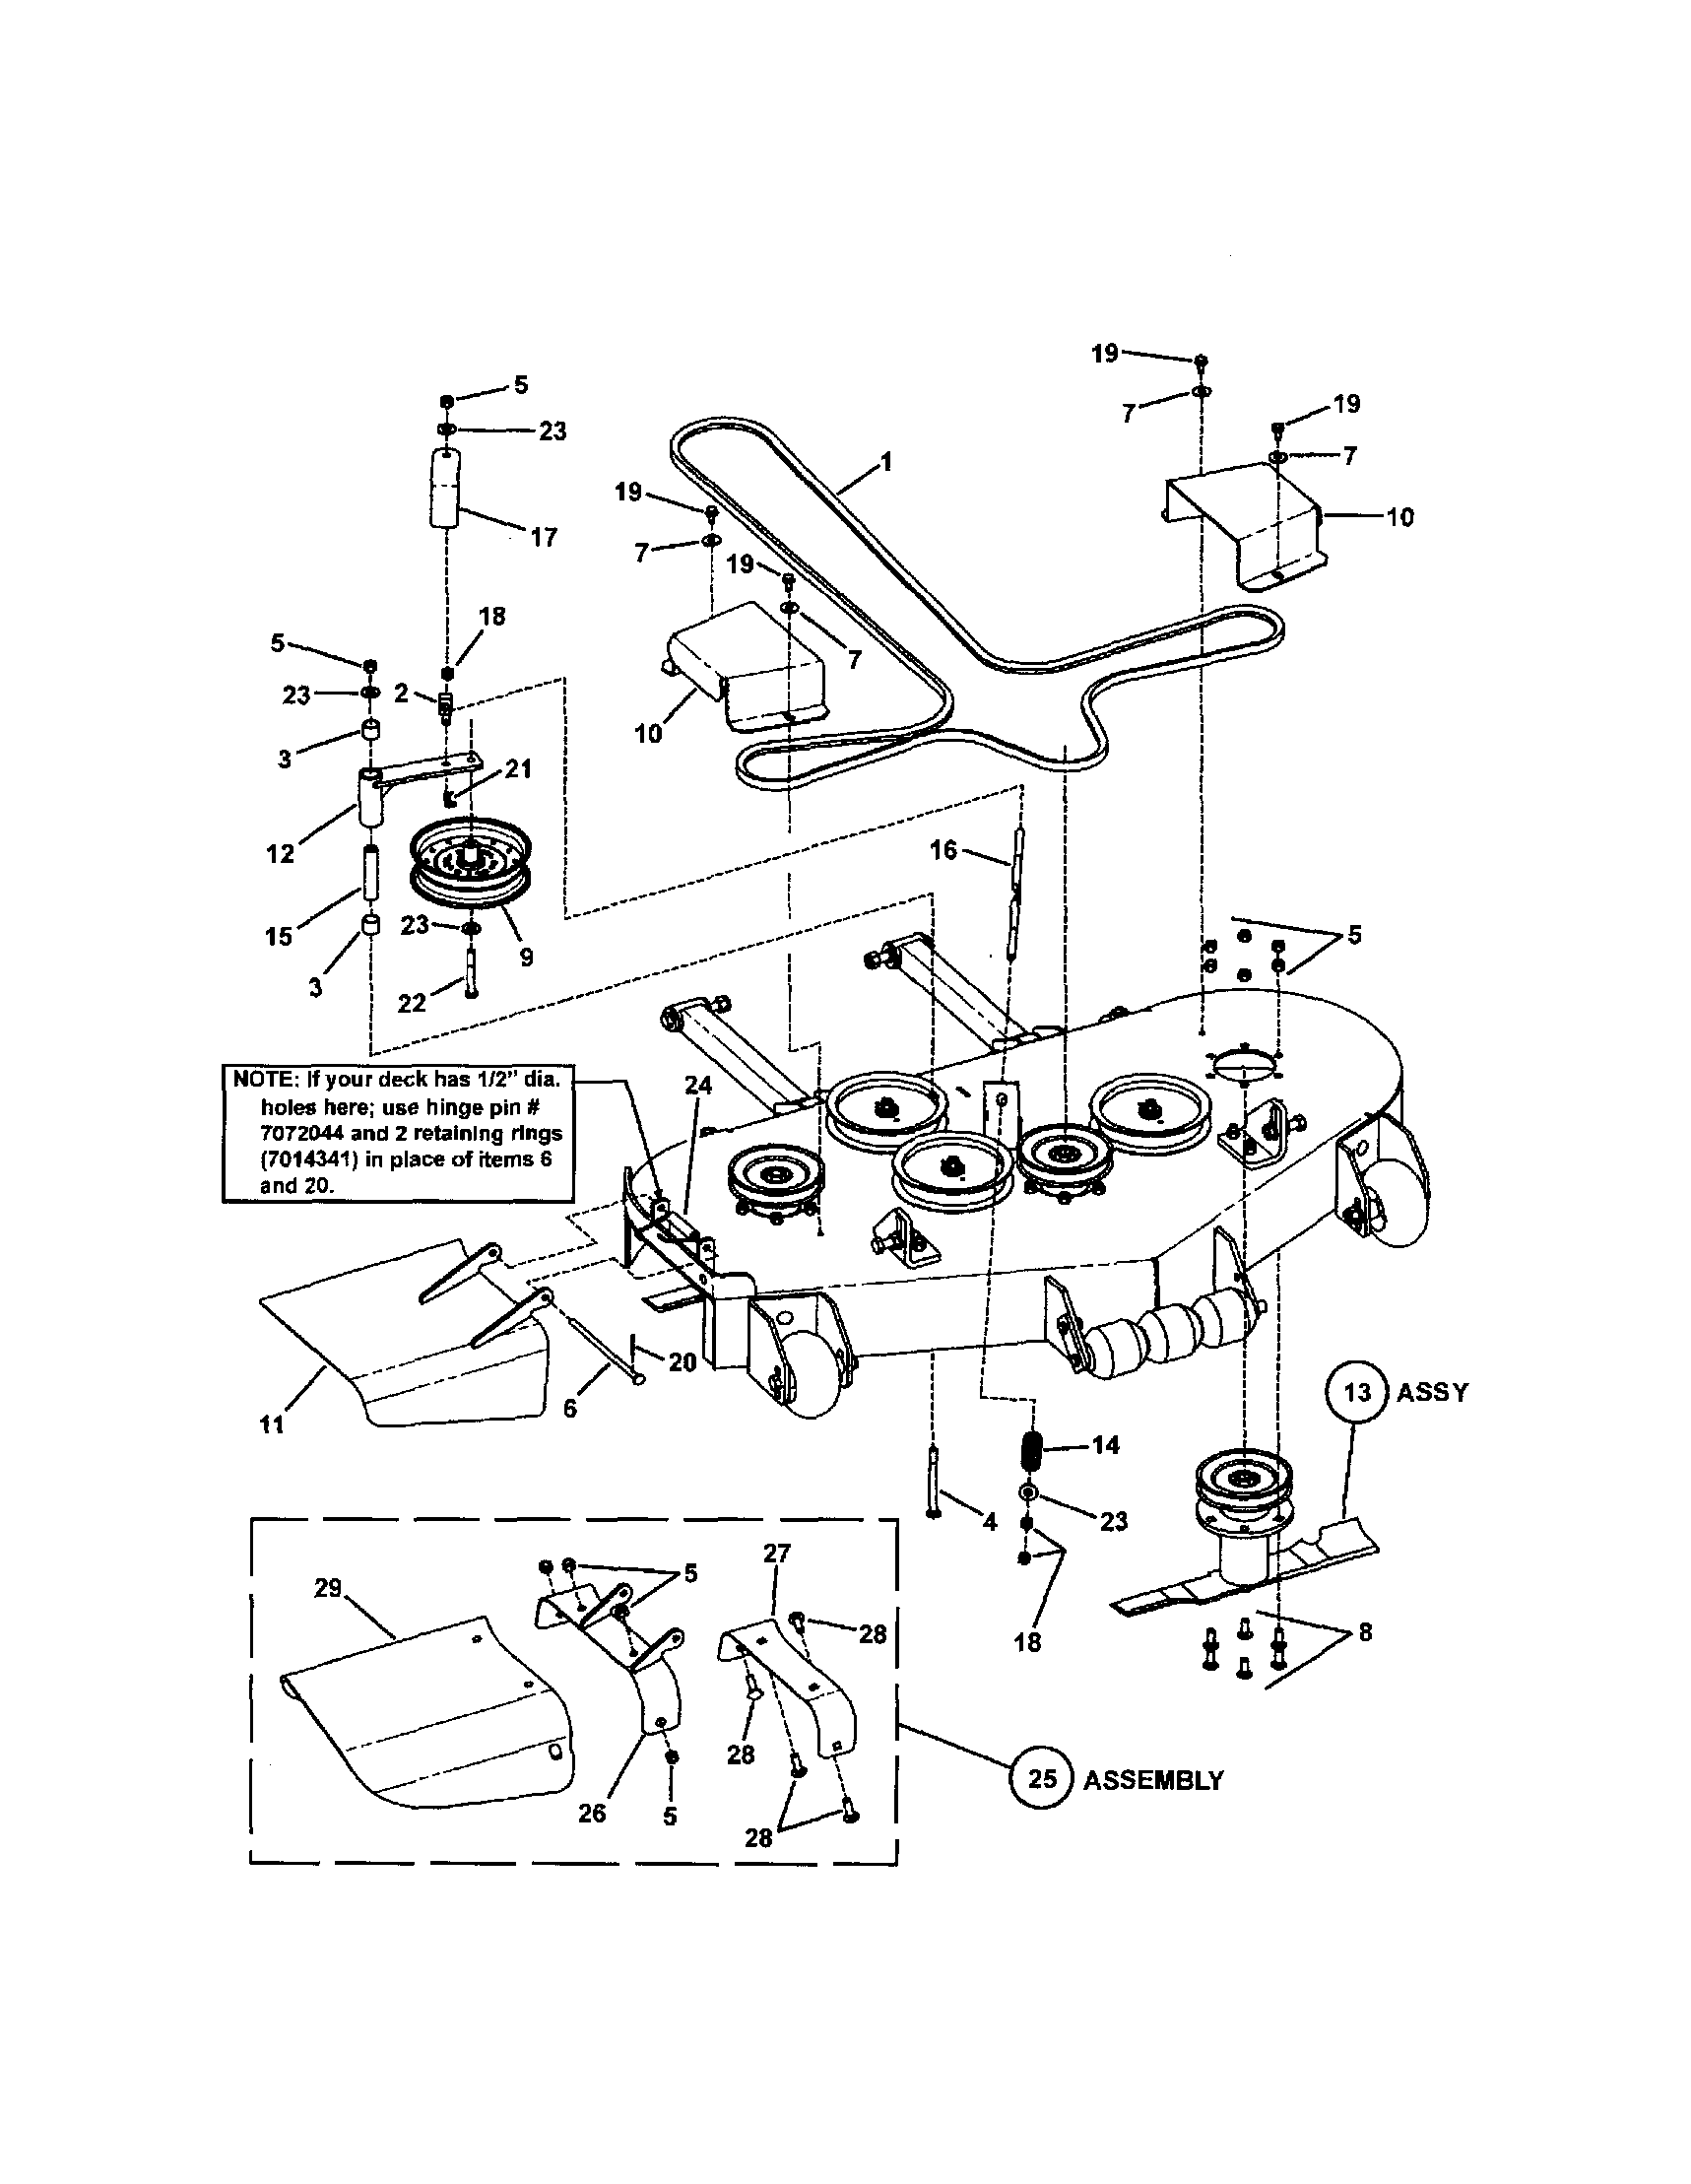 kia pride electrical wiring diagram zero turn mower drawing at getdrawings.com | free for ... #5